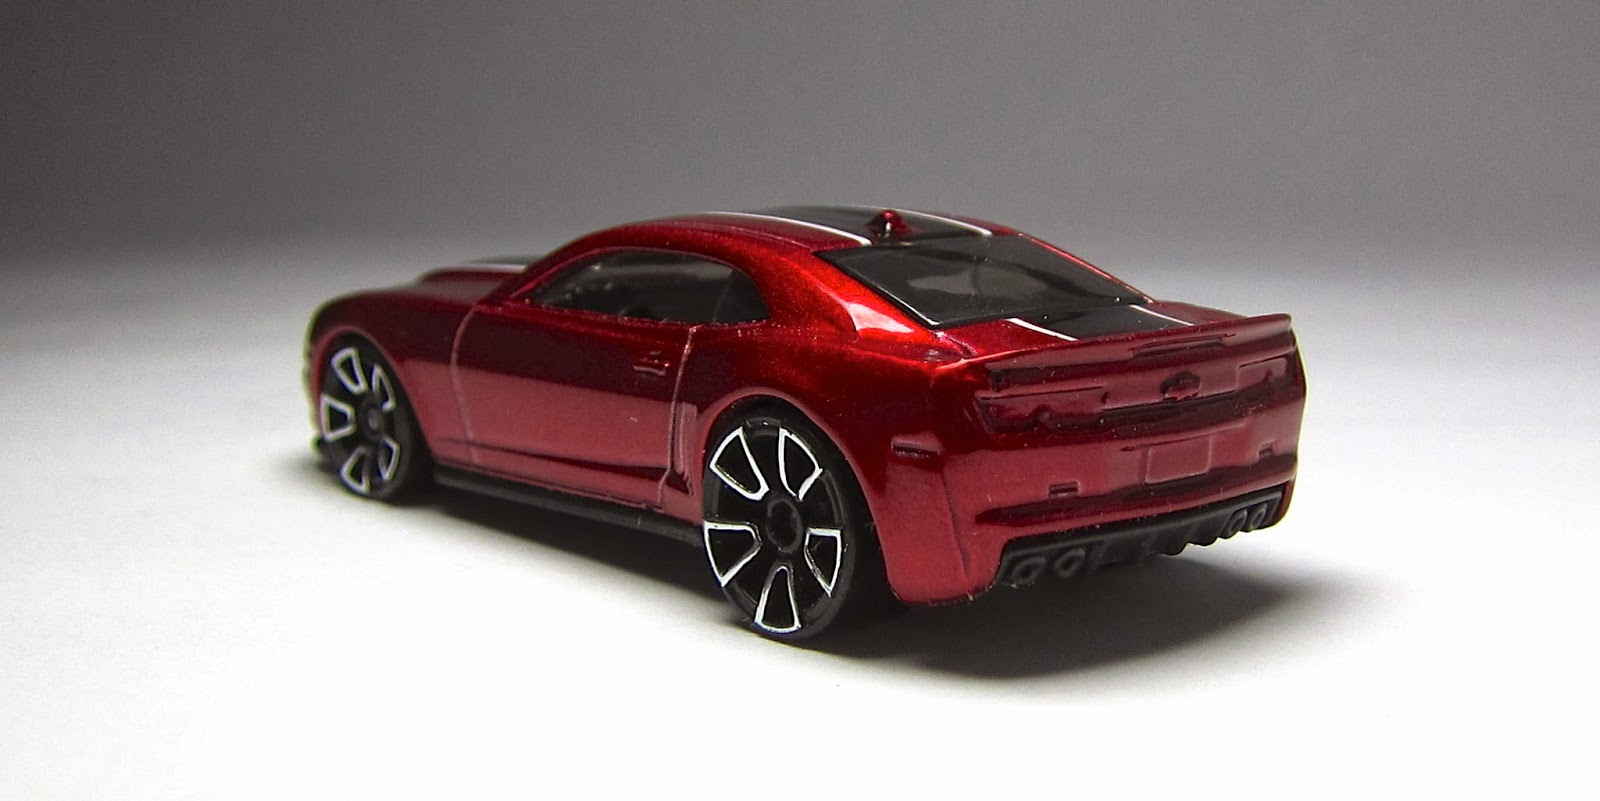 2014 hot wheels 2013 chevy camaro special edition 2014 mainline super